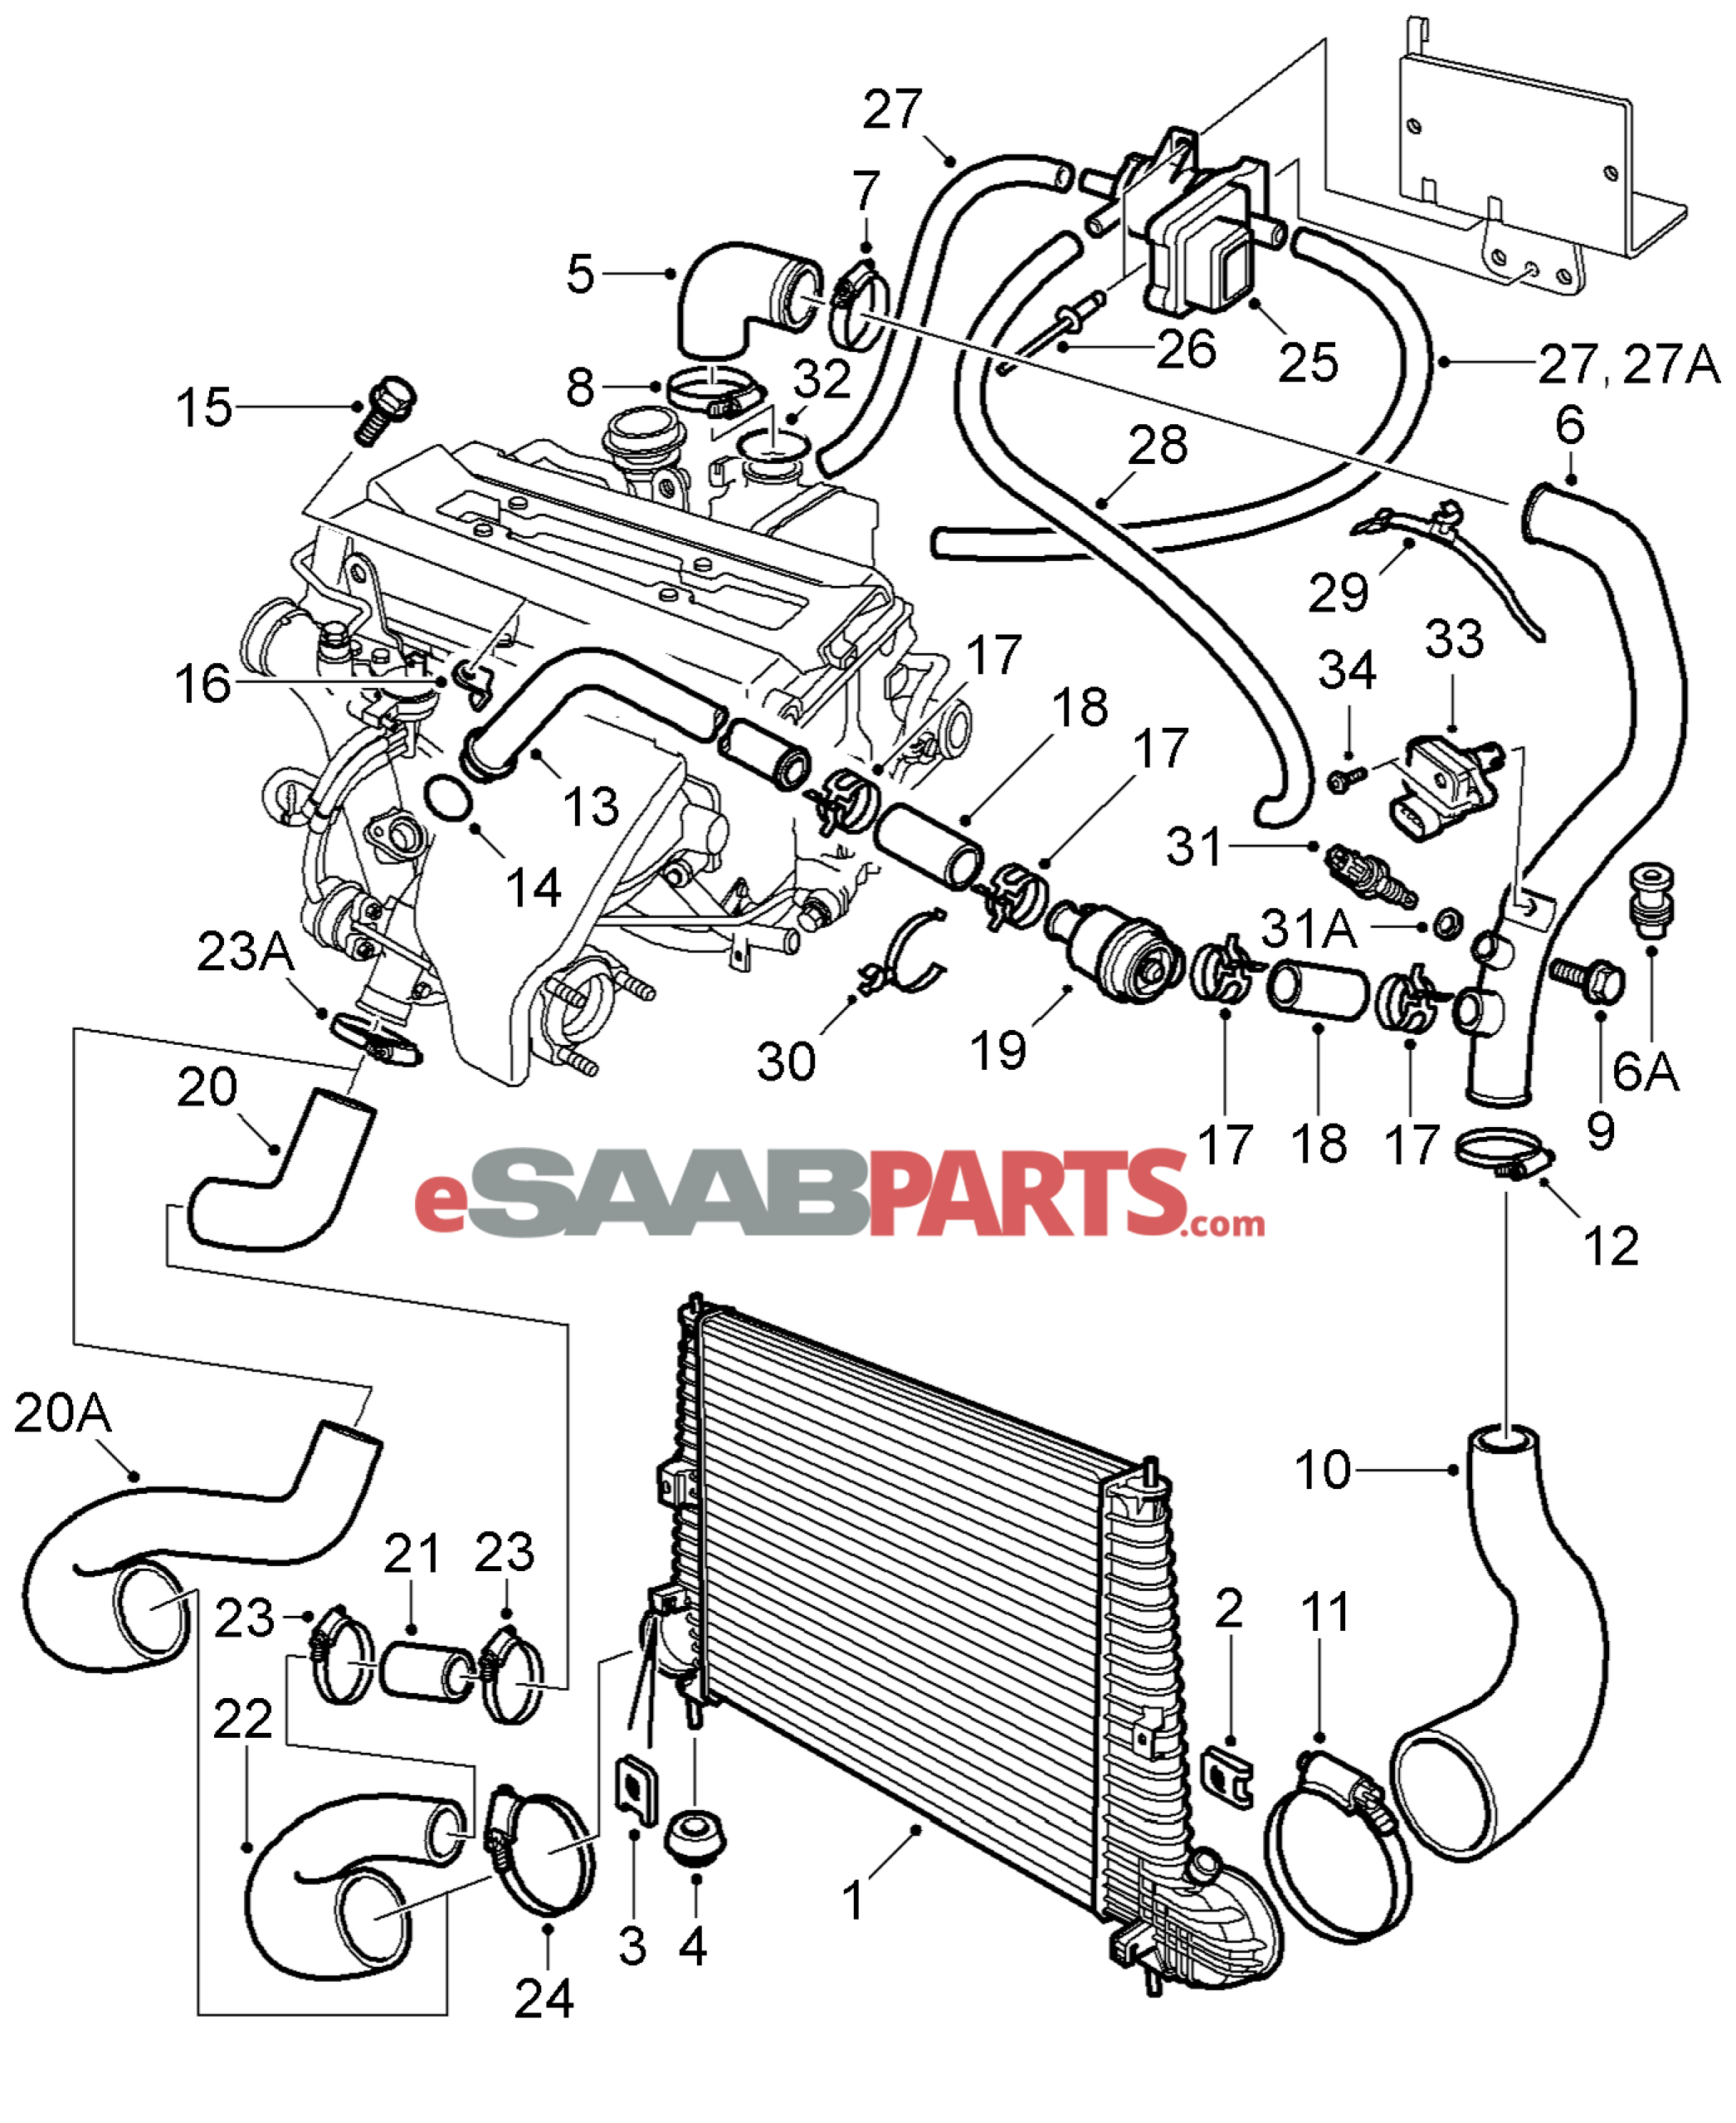 55562854  SAAB Vacuum Valve  Saab Parts from eSaabParts